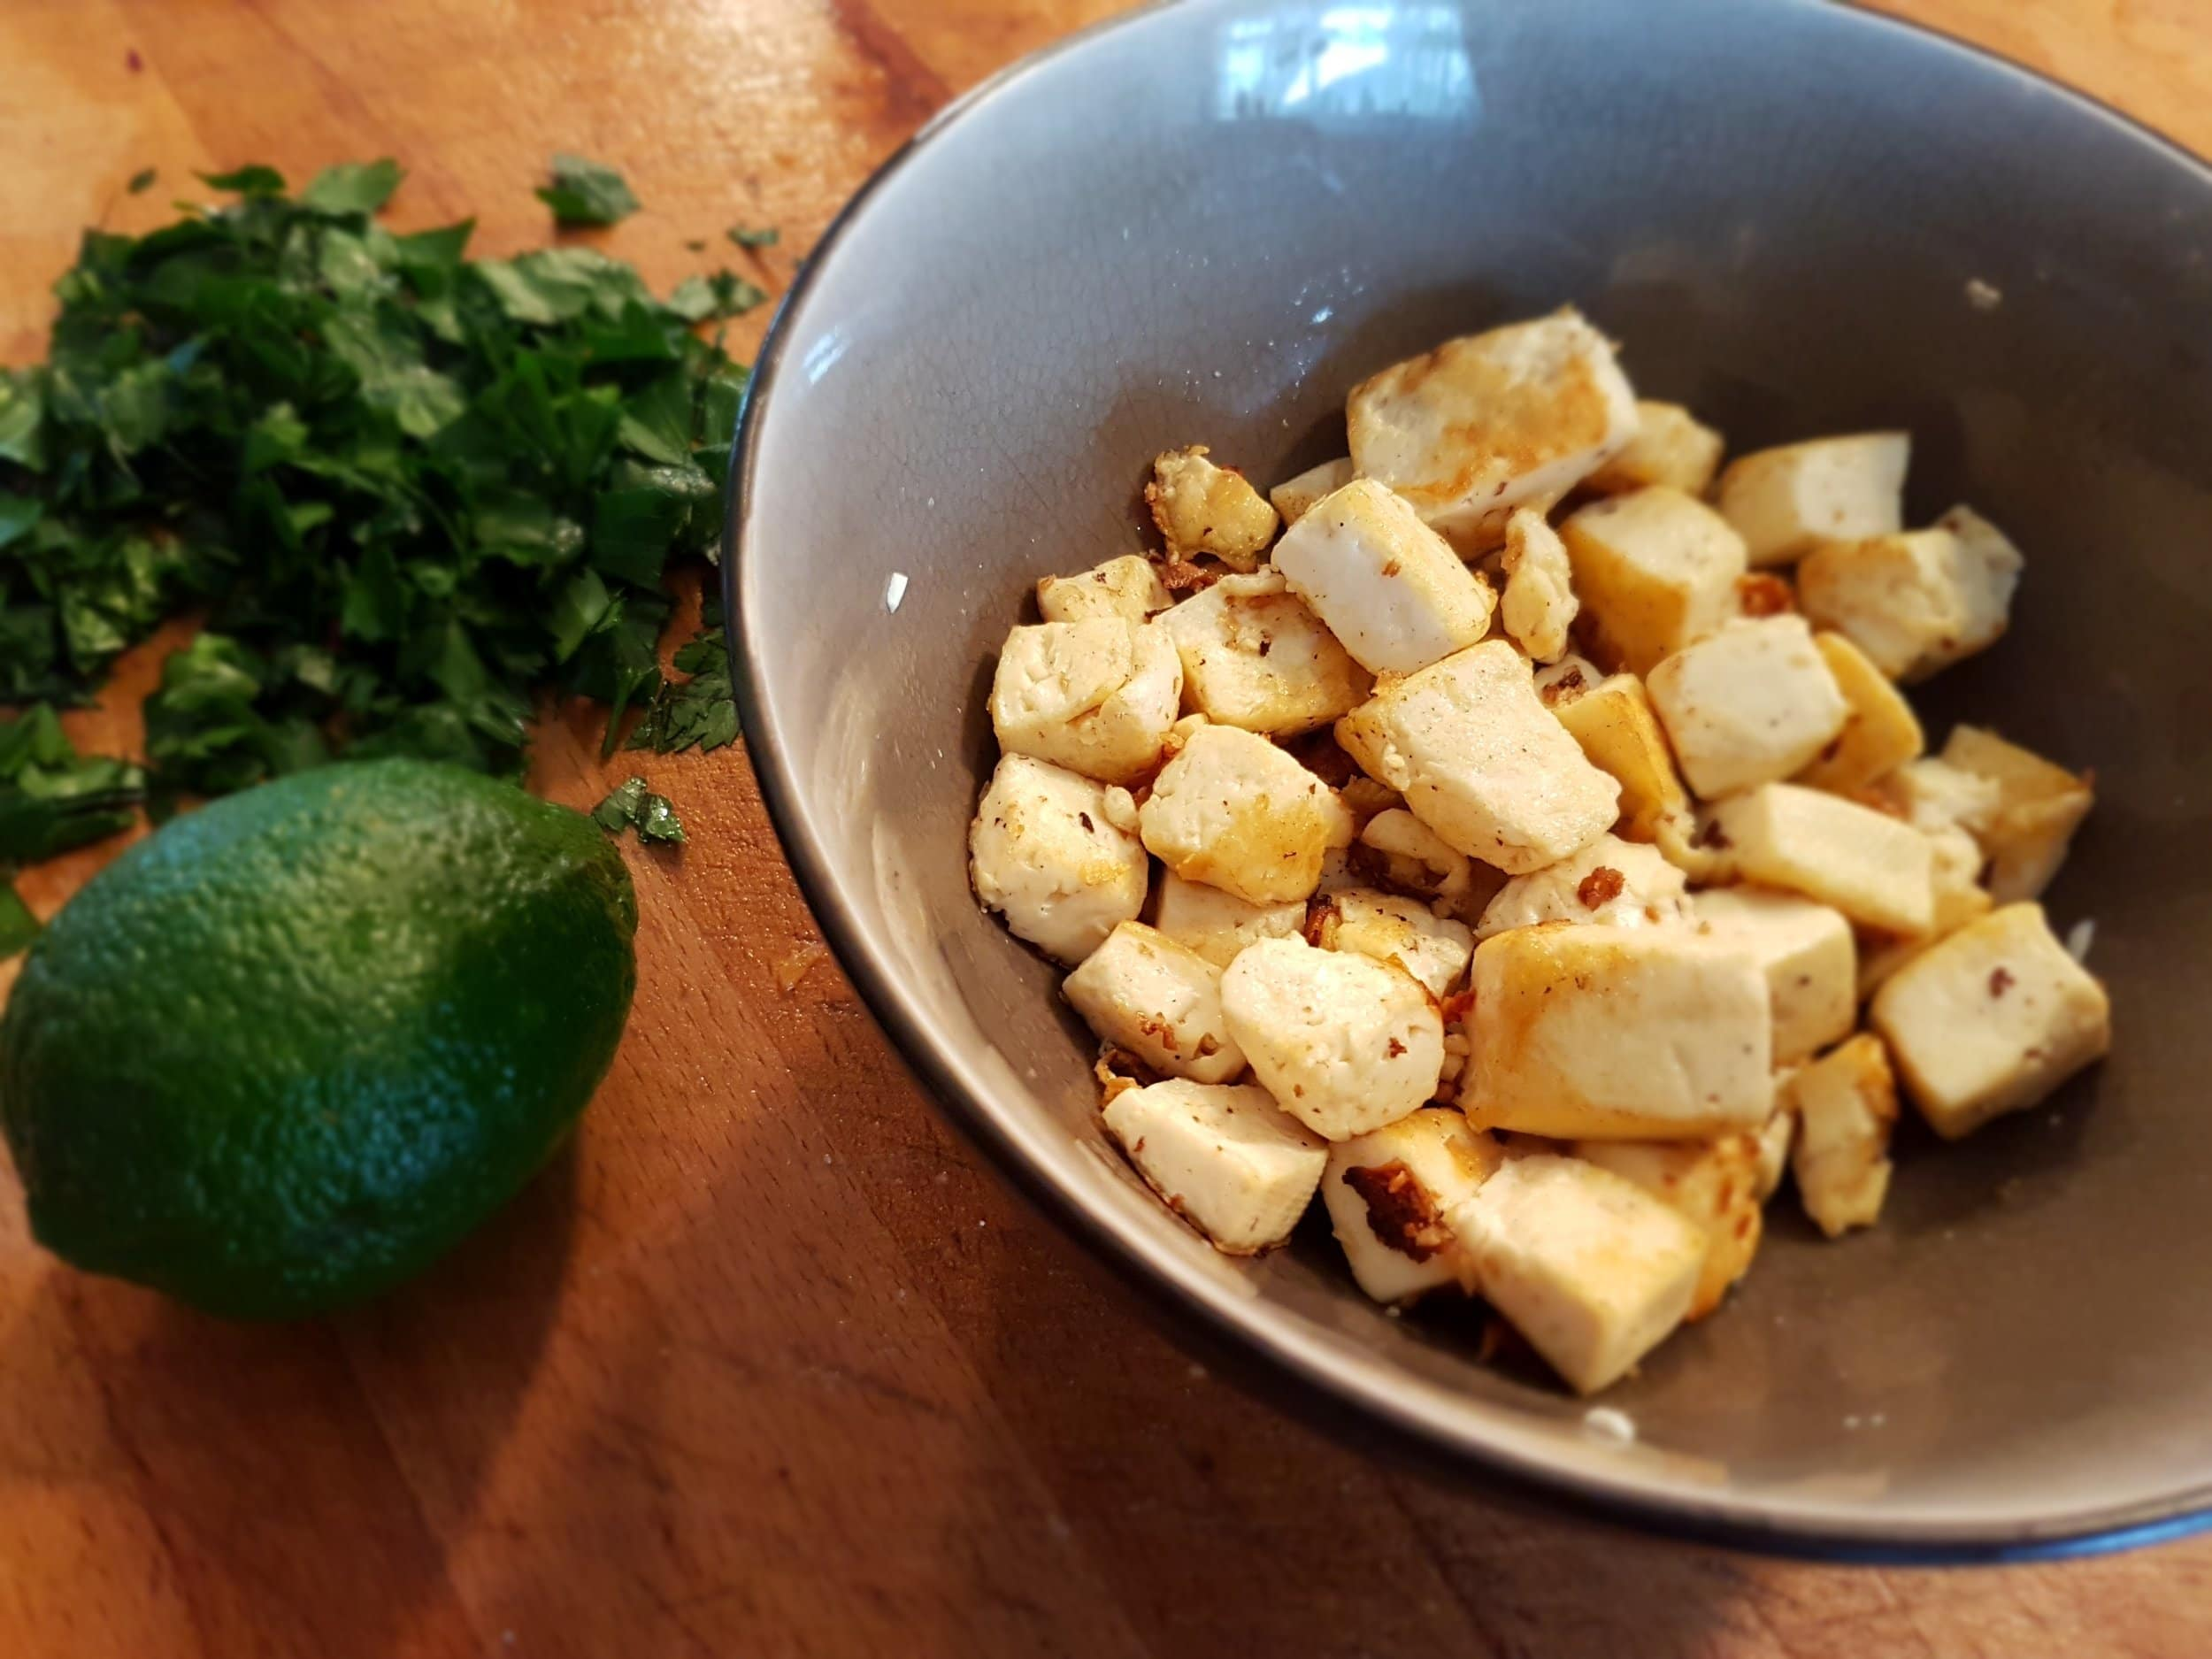 Cooked tofu in a bowl with parsley and lime on the side.